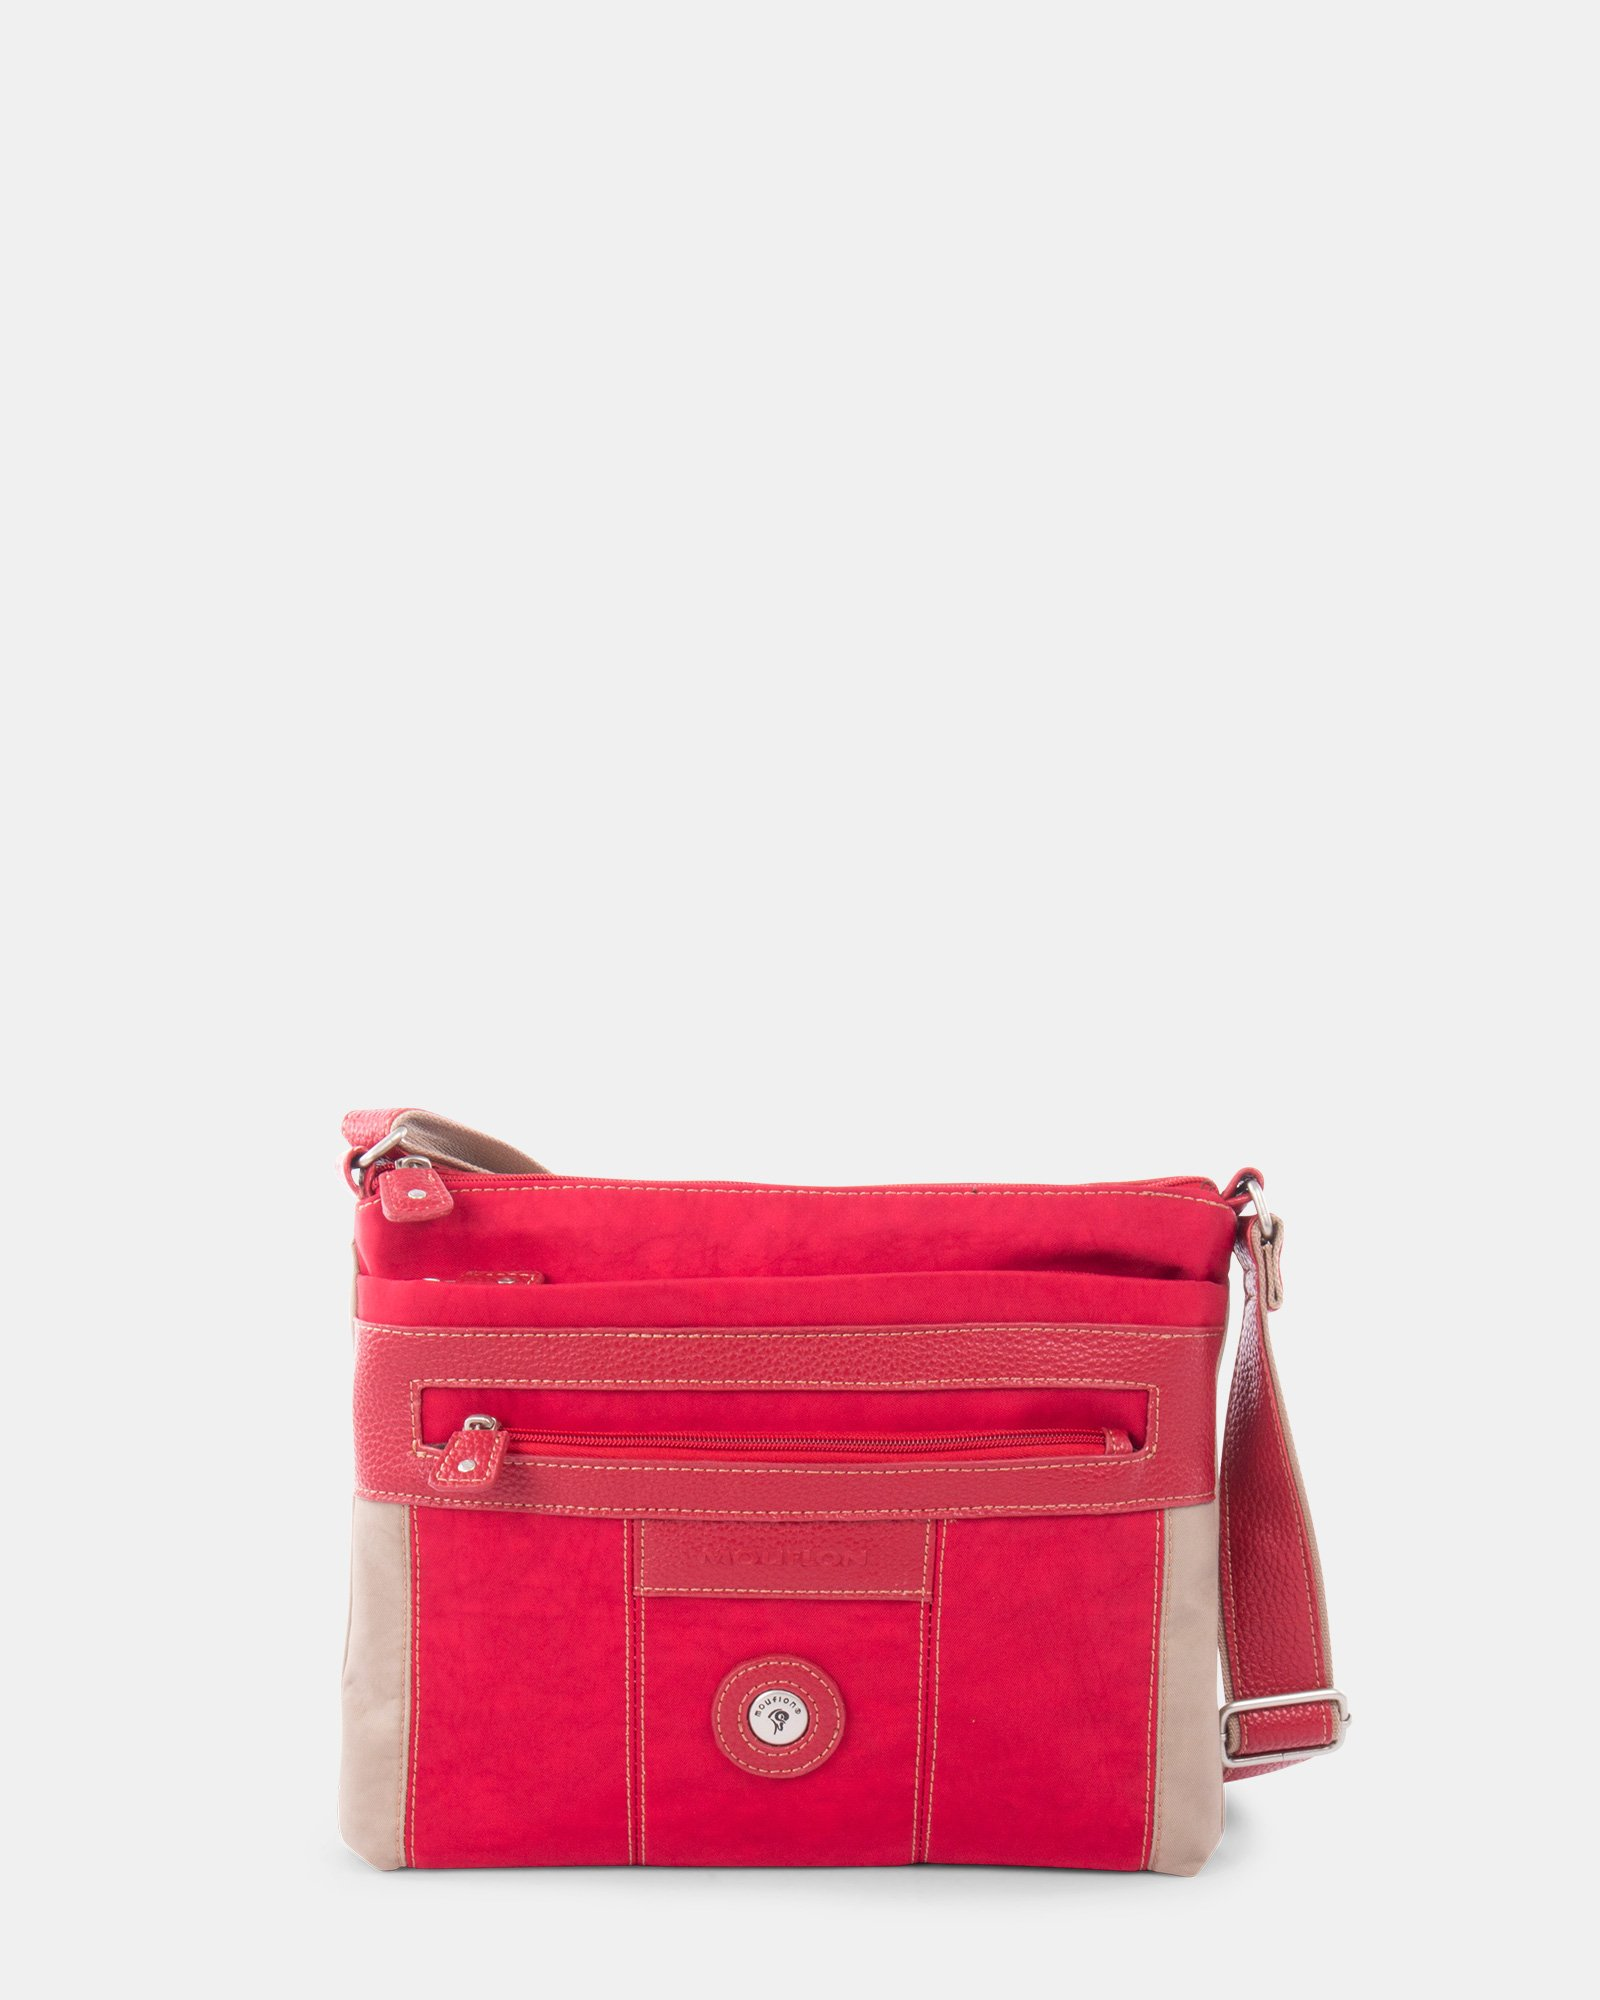 BICOLOR-Crossbody - Mouflon - Zoom